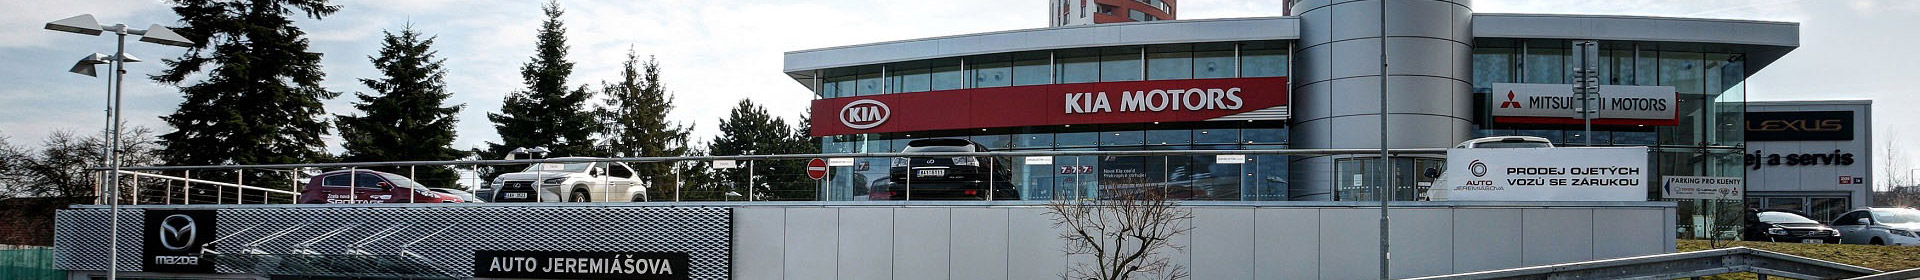 Kia Sportage 1,6 GDI  ACTIVE PLUS